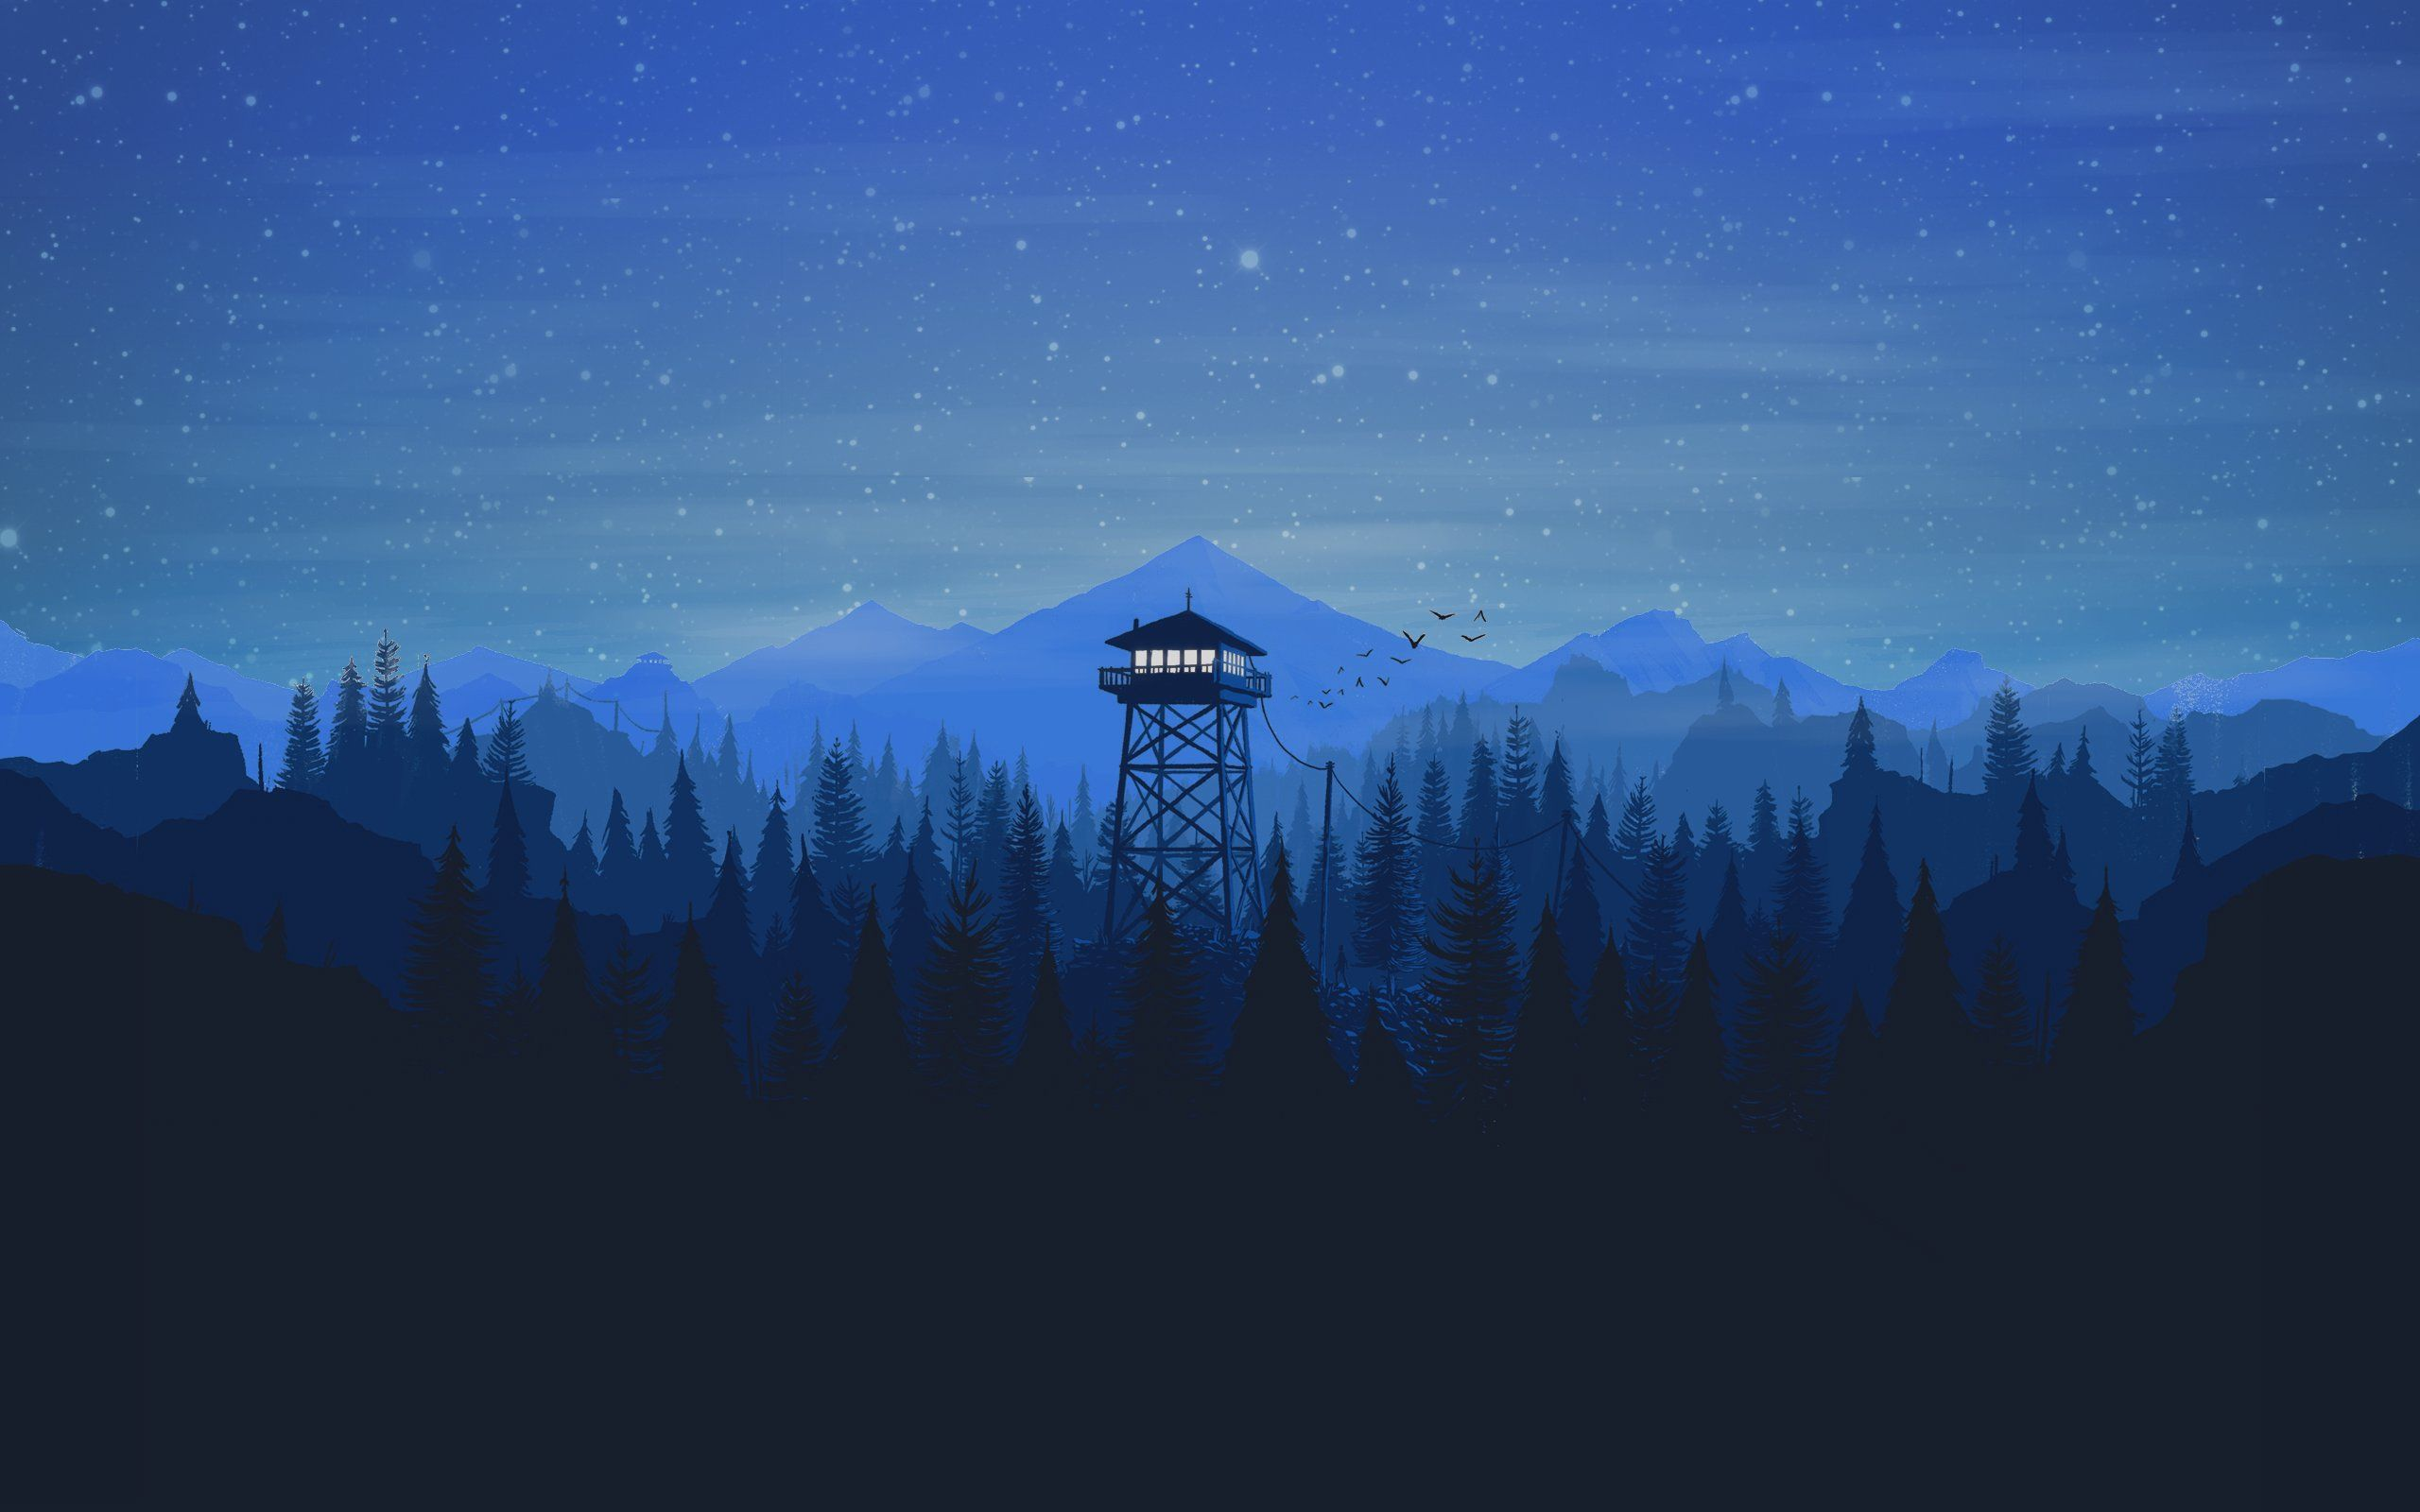 2560x1600 firewatch, Night, Stars, Tower, Forest Wallpapers HD ...